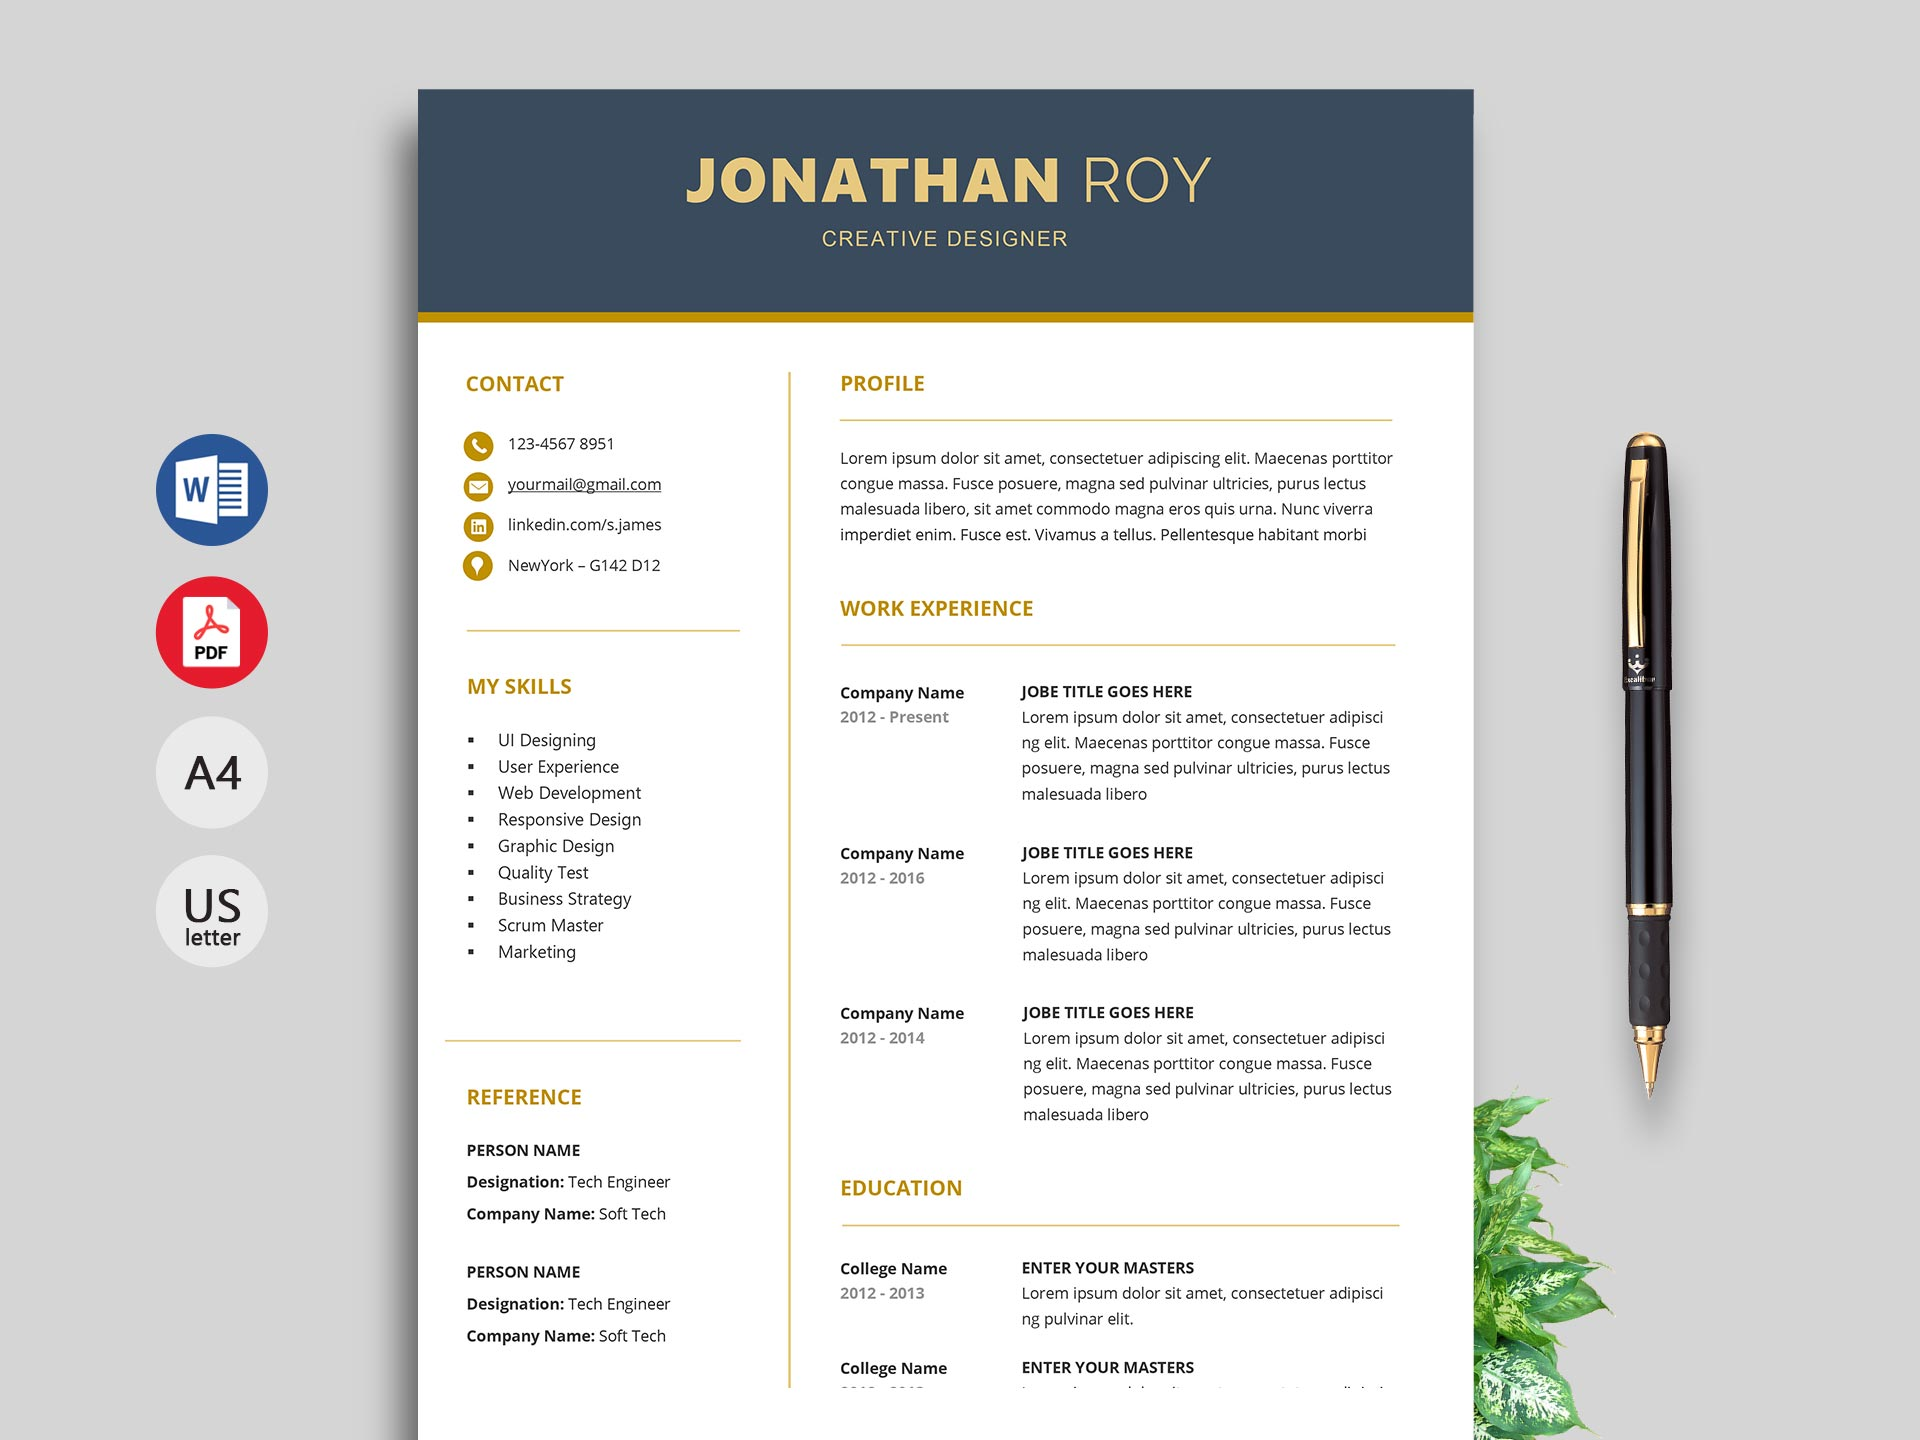 creative resume cv template free resumekraft templates gain interview accent marks self Resume Resume Templates 2019 Download